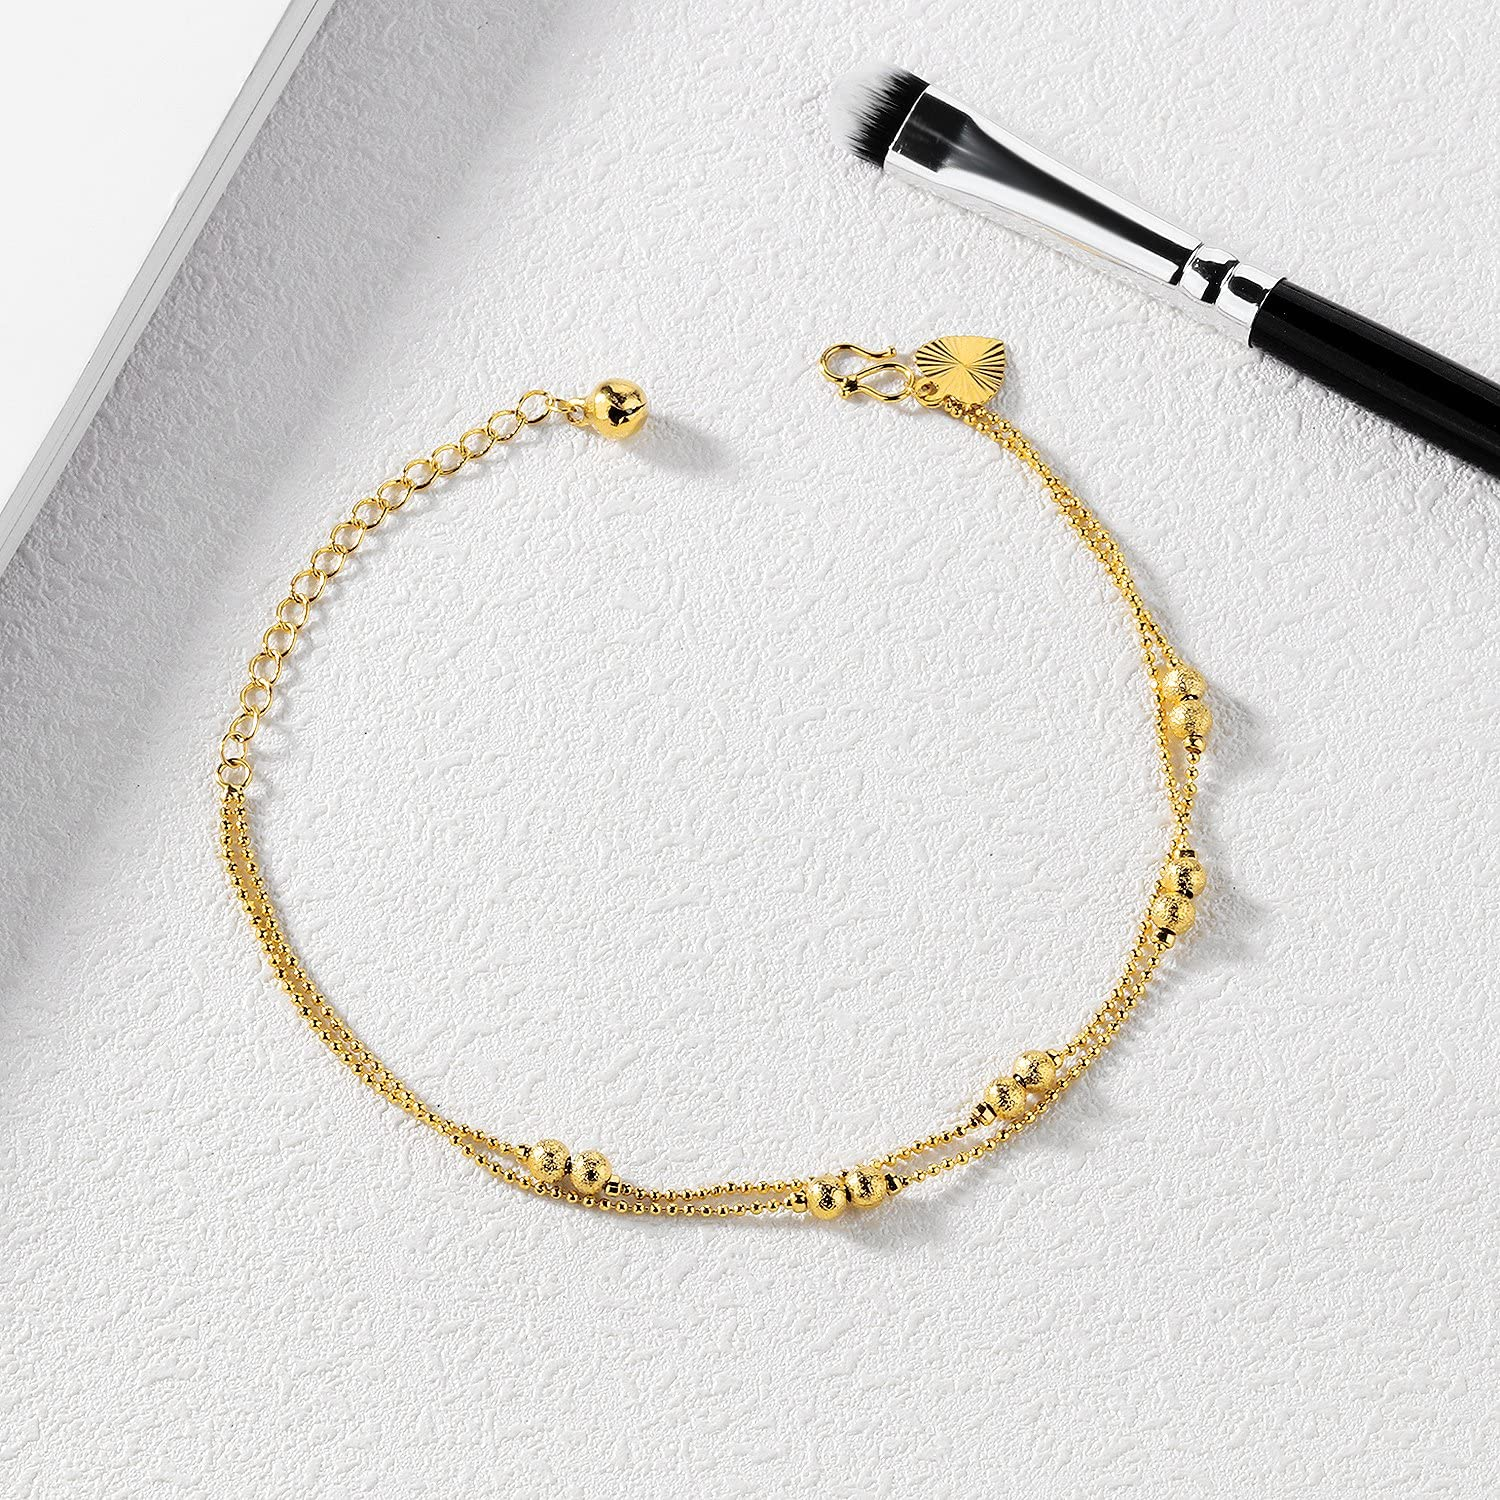 MONIYA Double-Layer Gold Plated Chain Beads Anklet for Women Girl Adjustable Ankle Bracelet Beach Jewelry